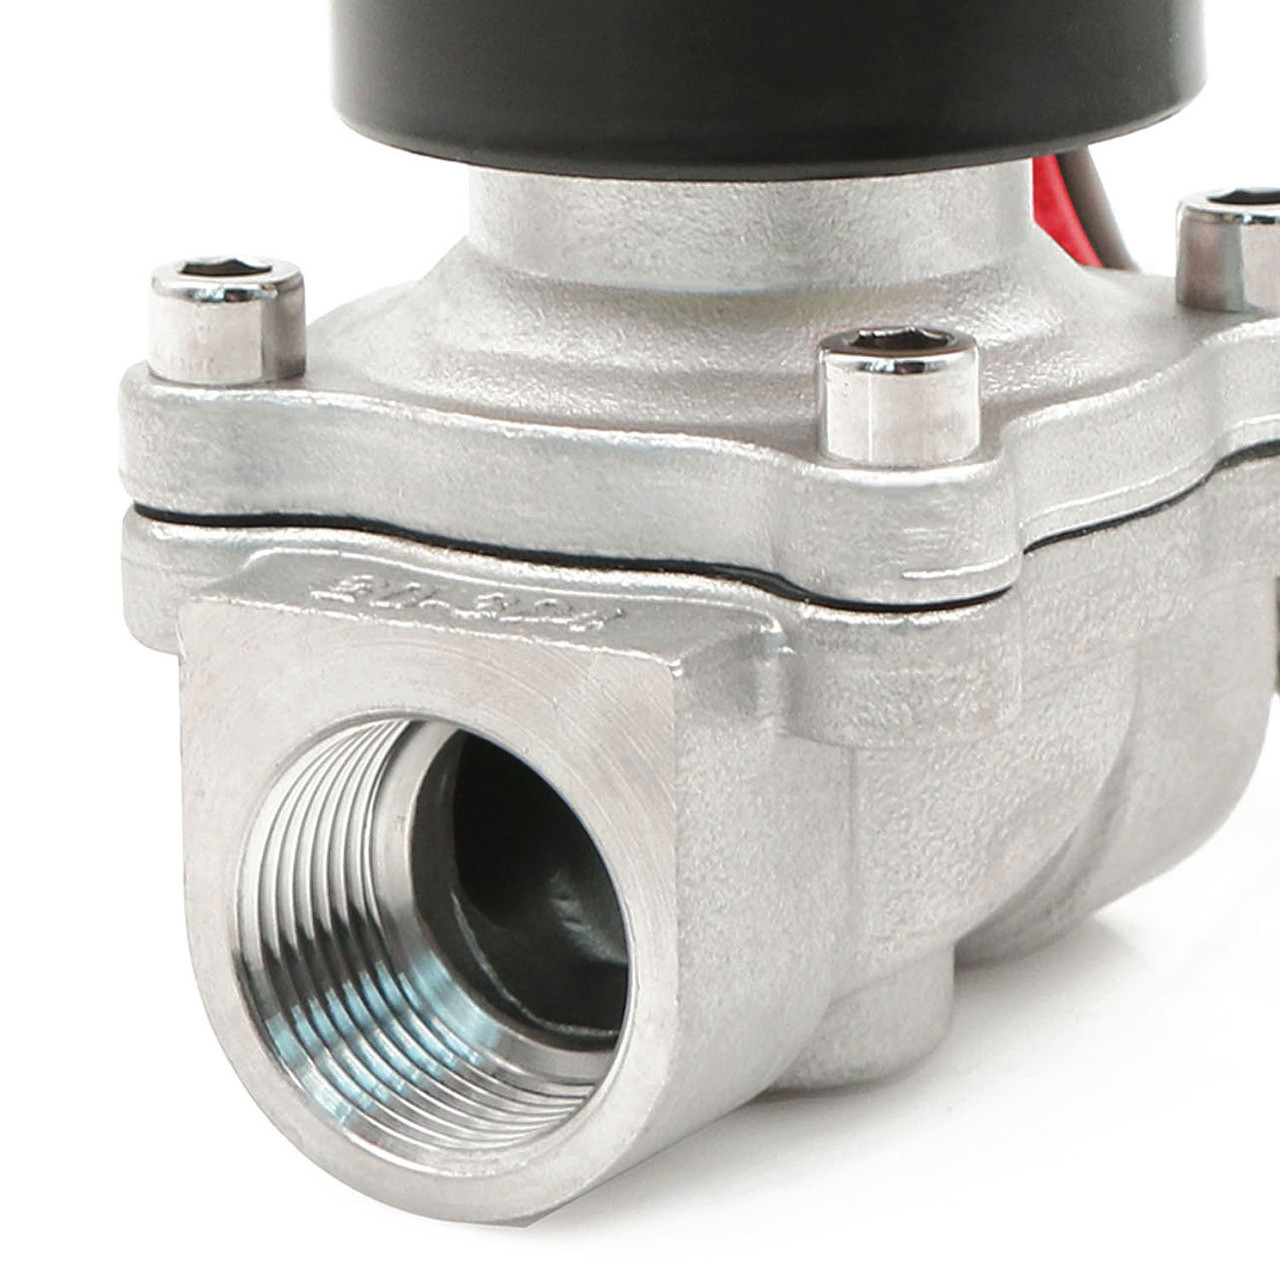 """U.S. Solid Electric Solenoid Valve- 3/4"""" 24V AC Solenoid Valve Stainless Steel Body Normally Closed, VITON SEAL"""